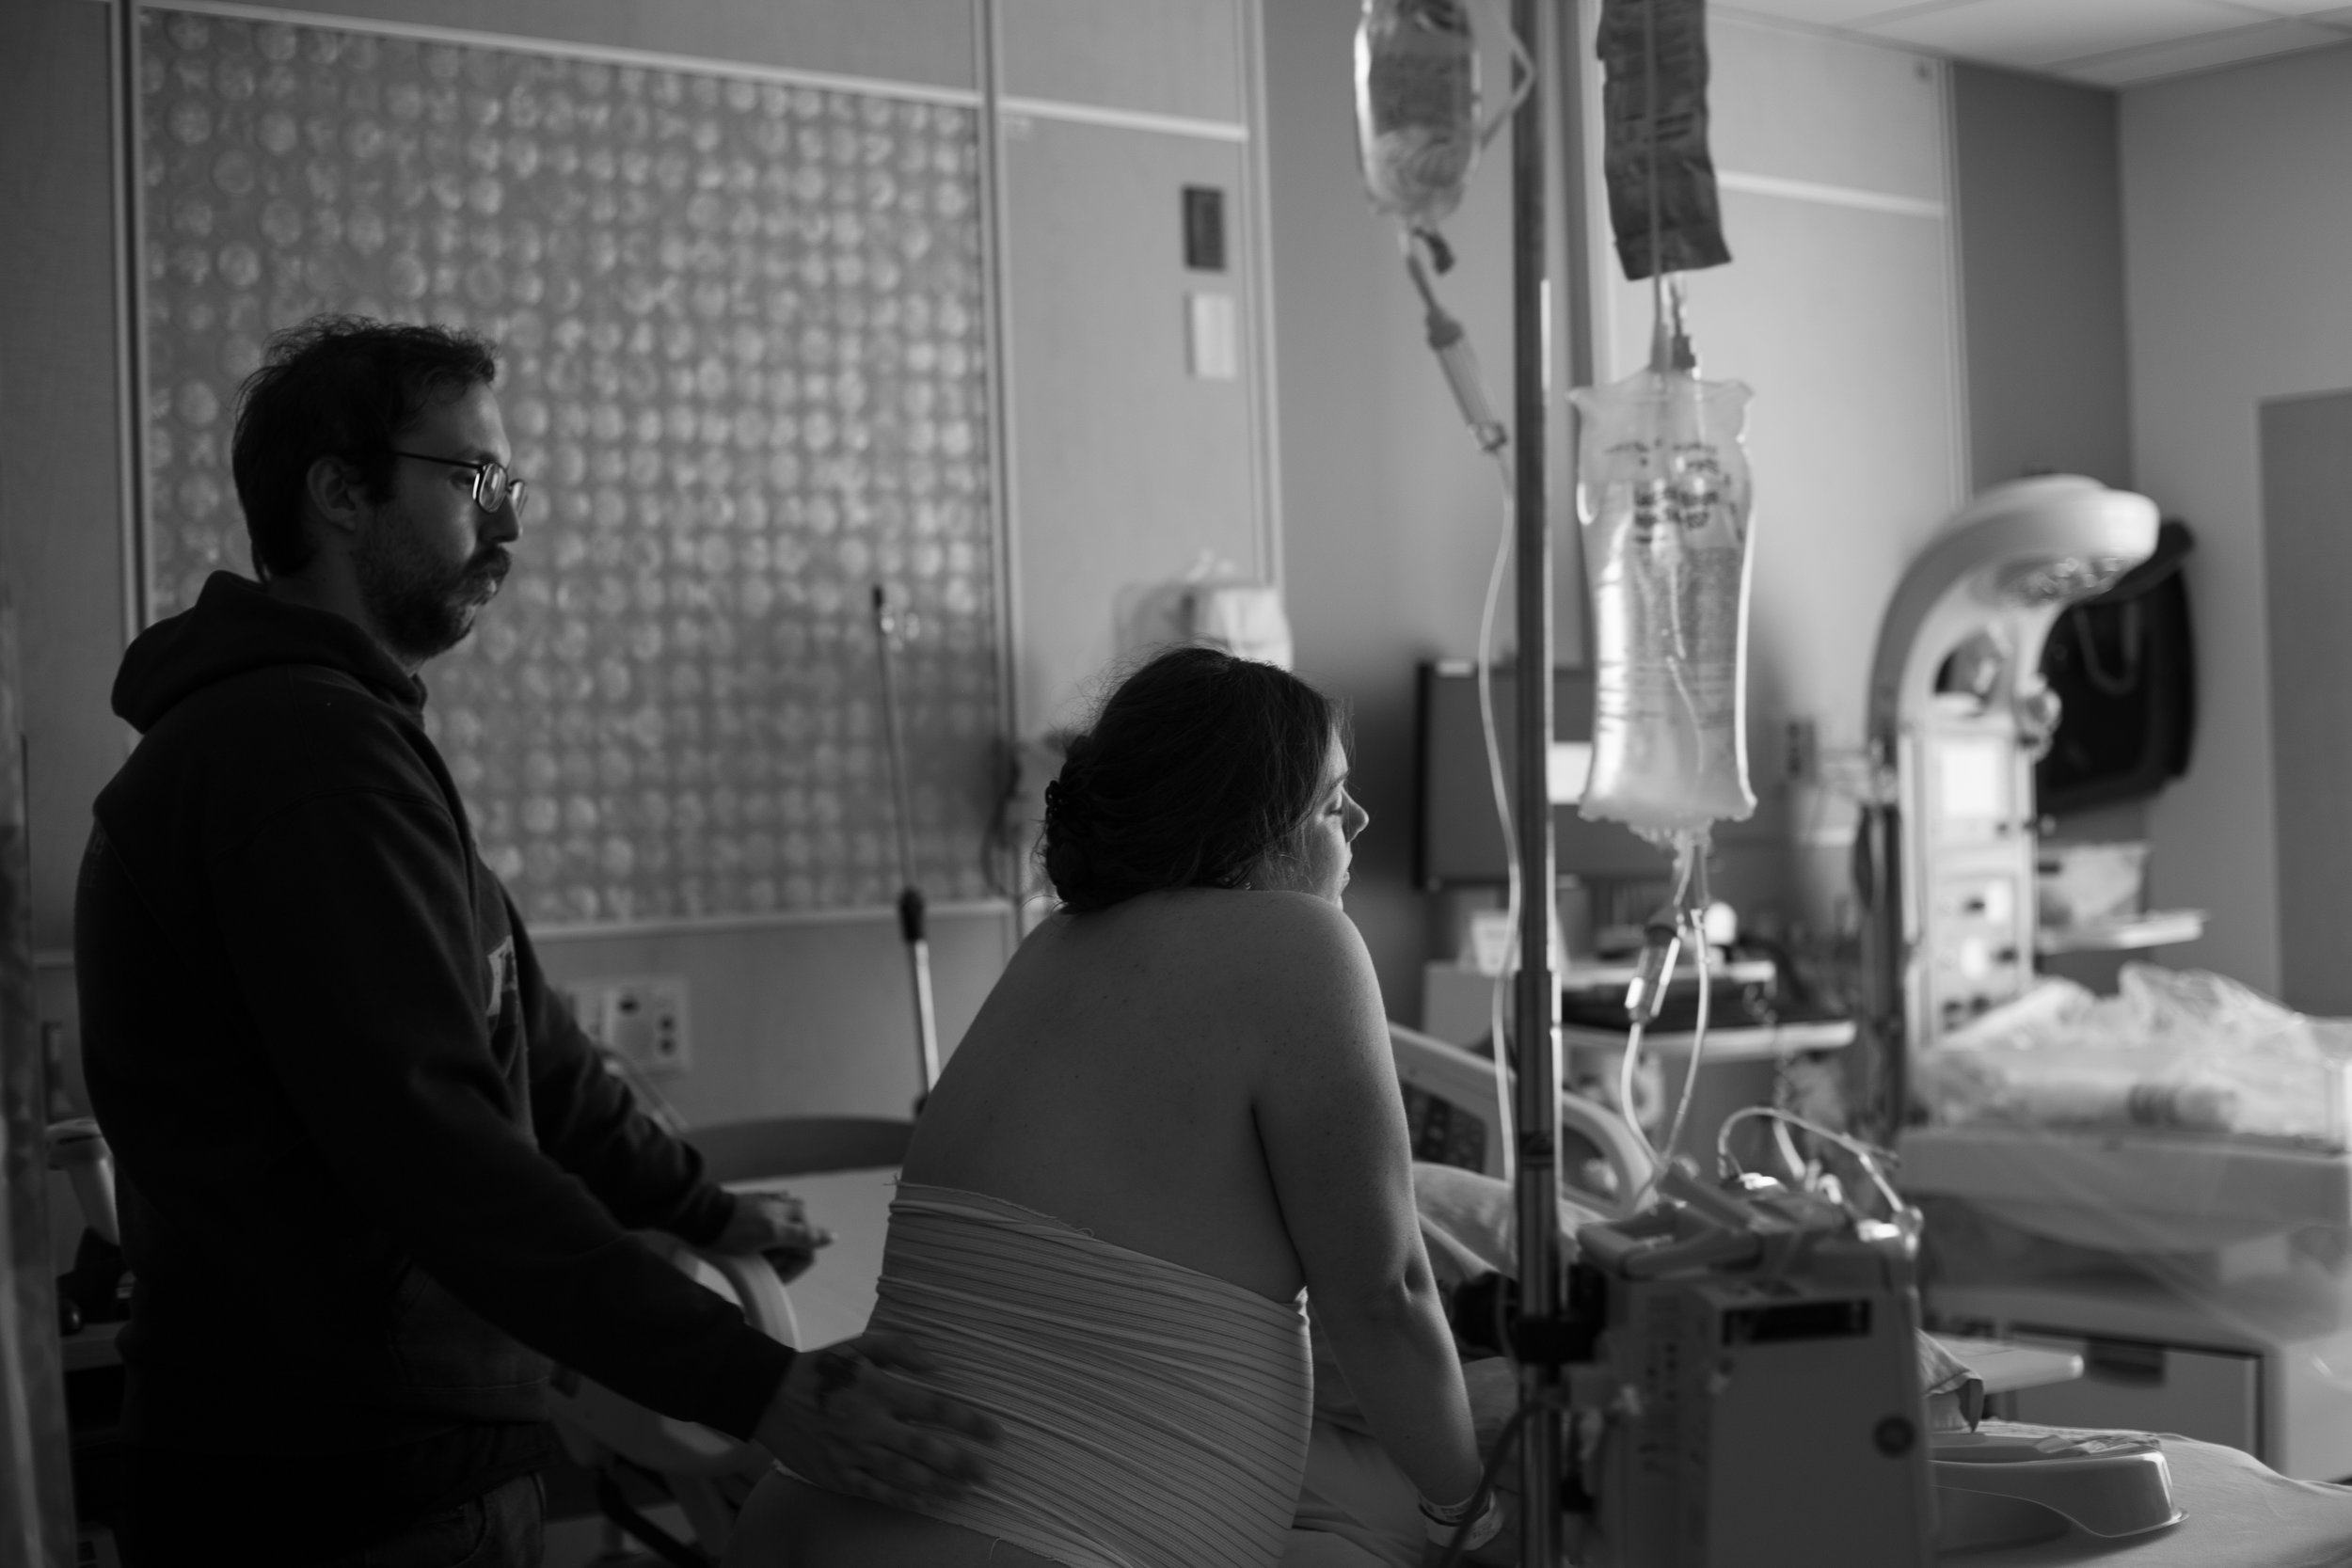 Black and white image of a man giving counter pressure to a woman in the hospital.